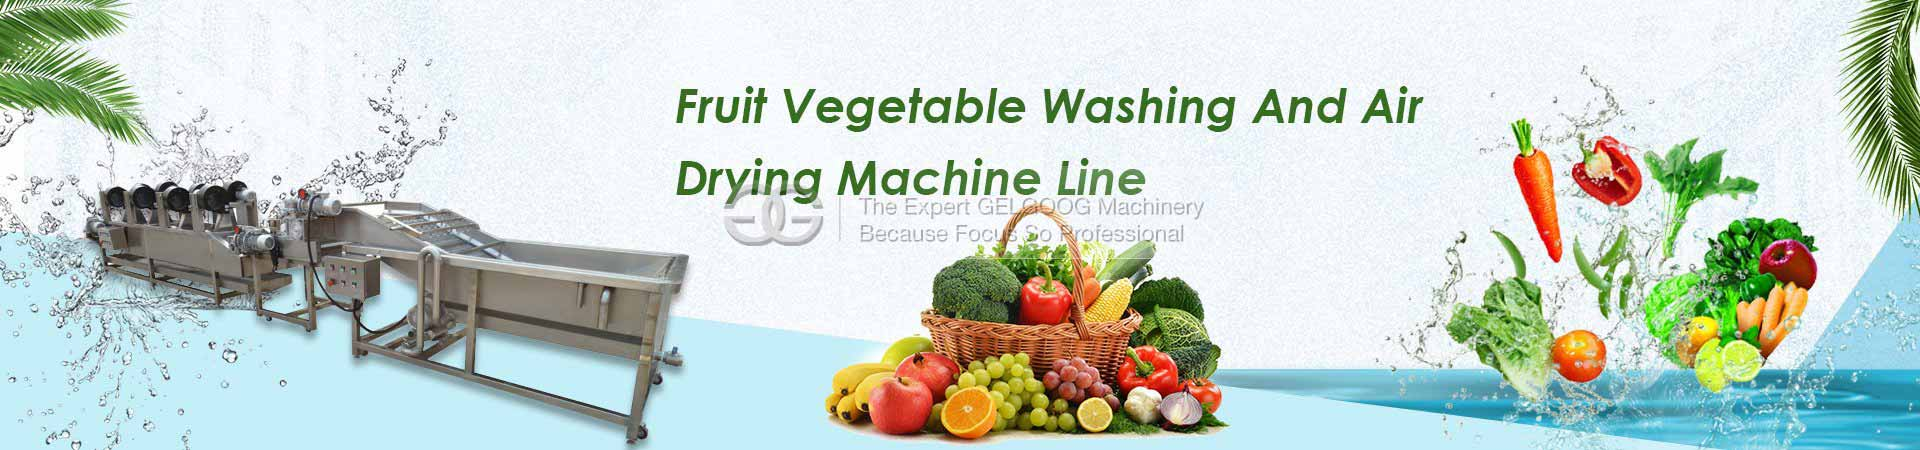 Fruit Vegetable Washing and Air Drying Machine